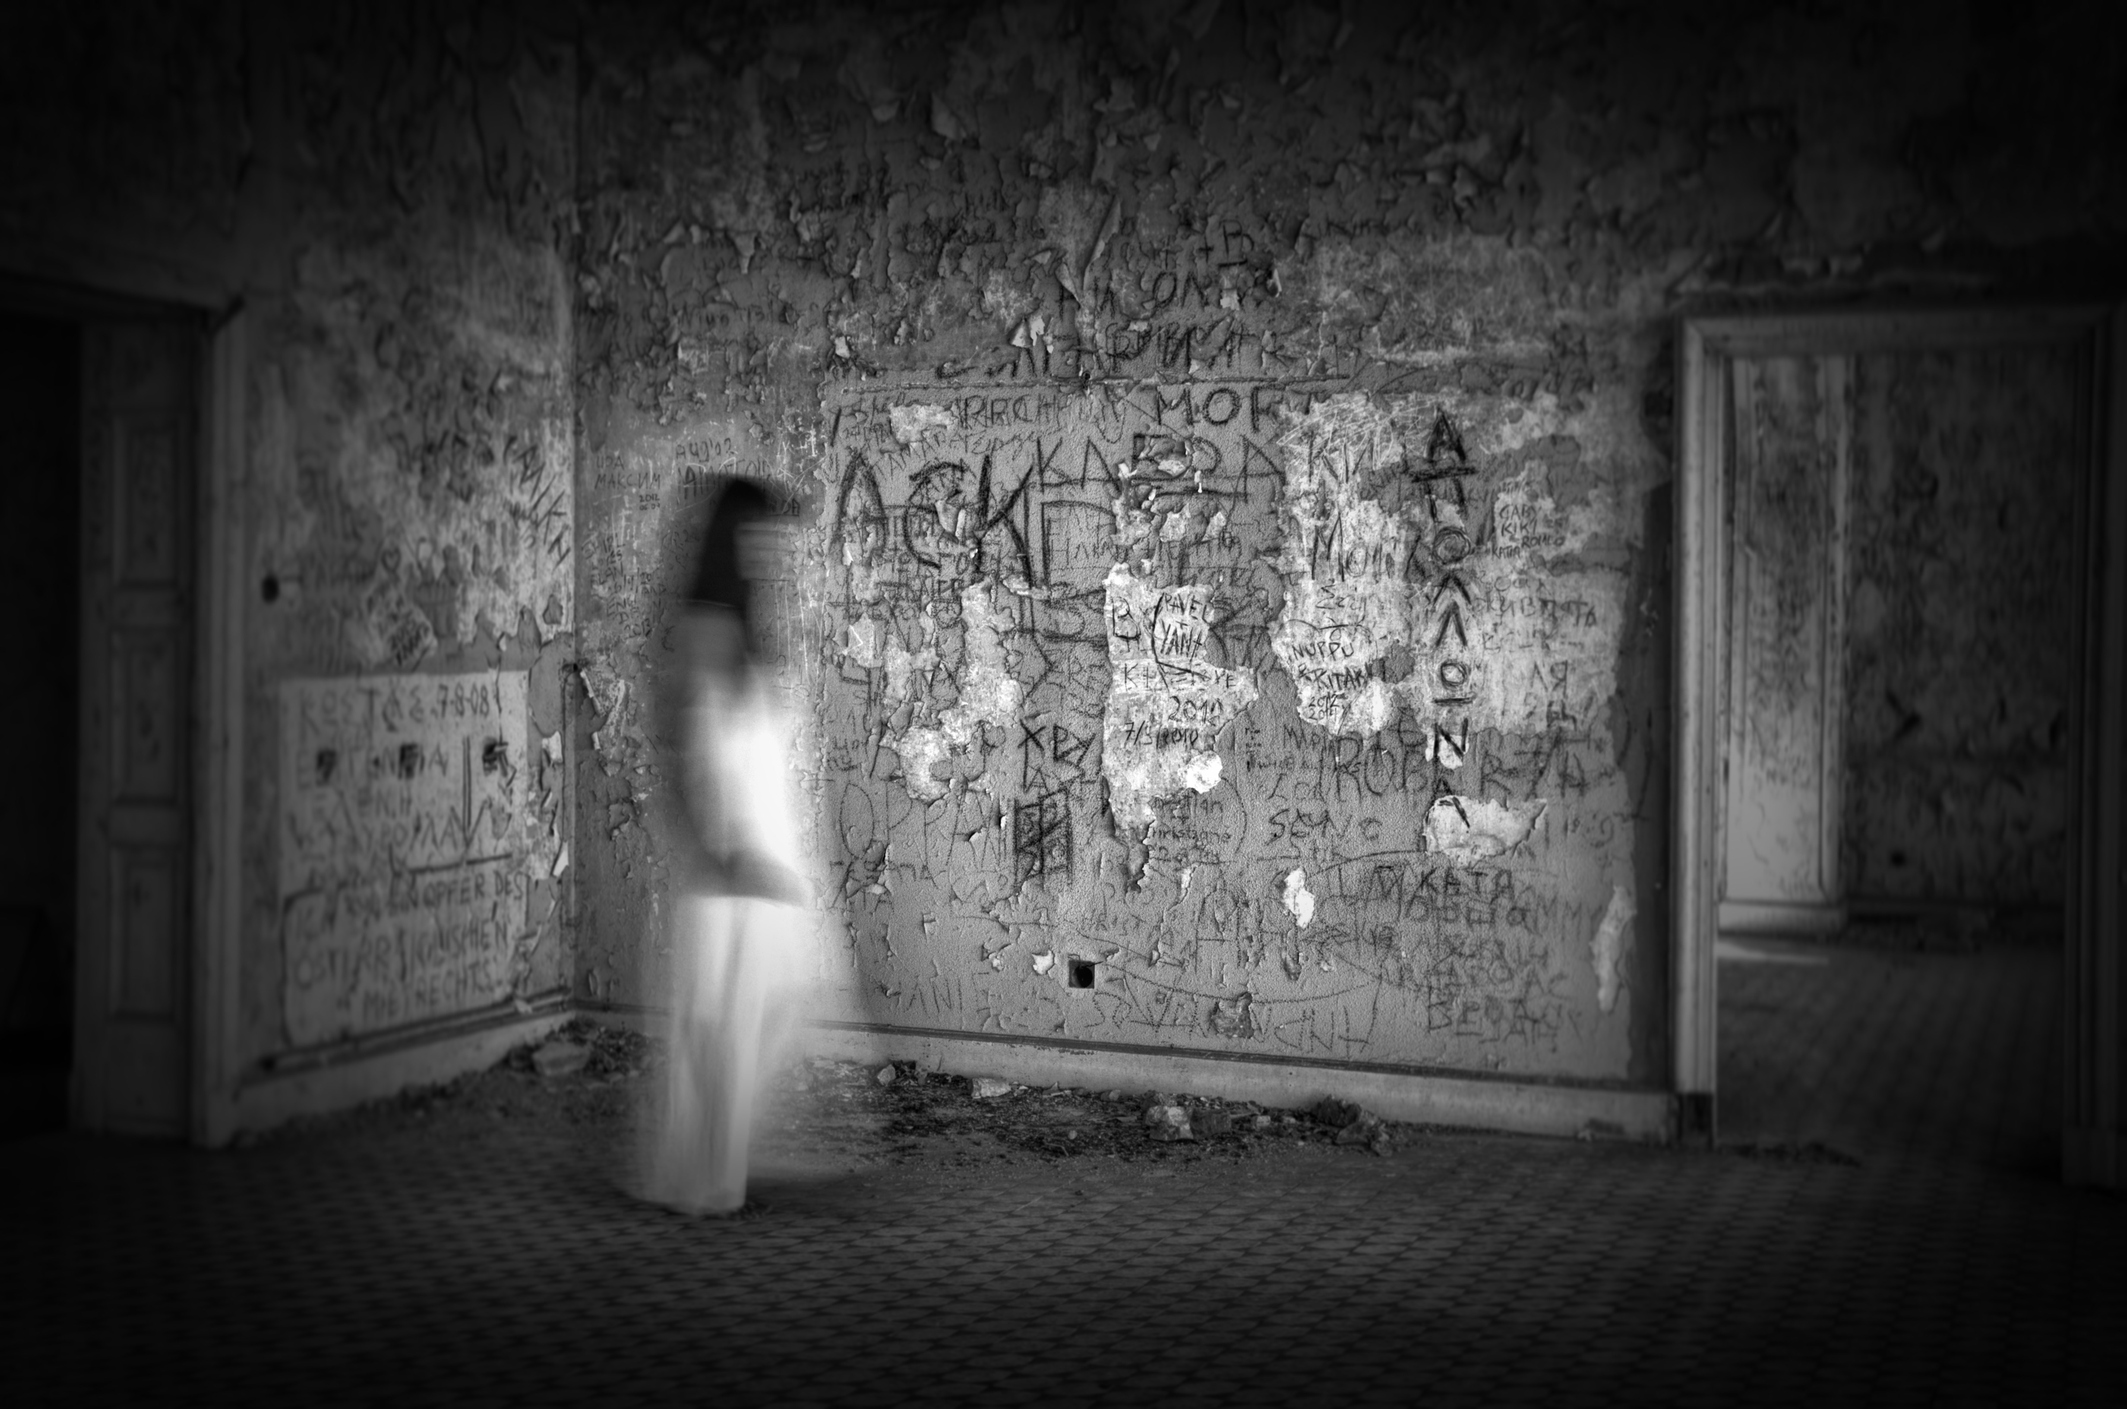 Misconceptions About the Paranormal | LoveToKnow